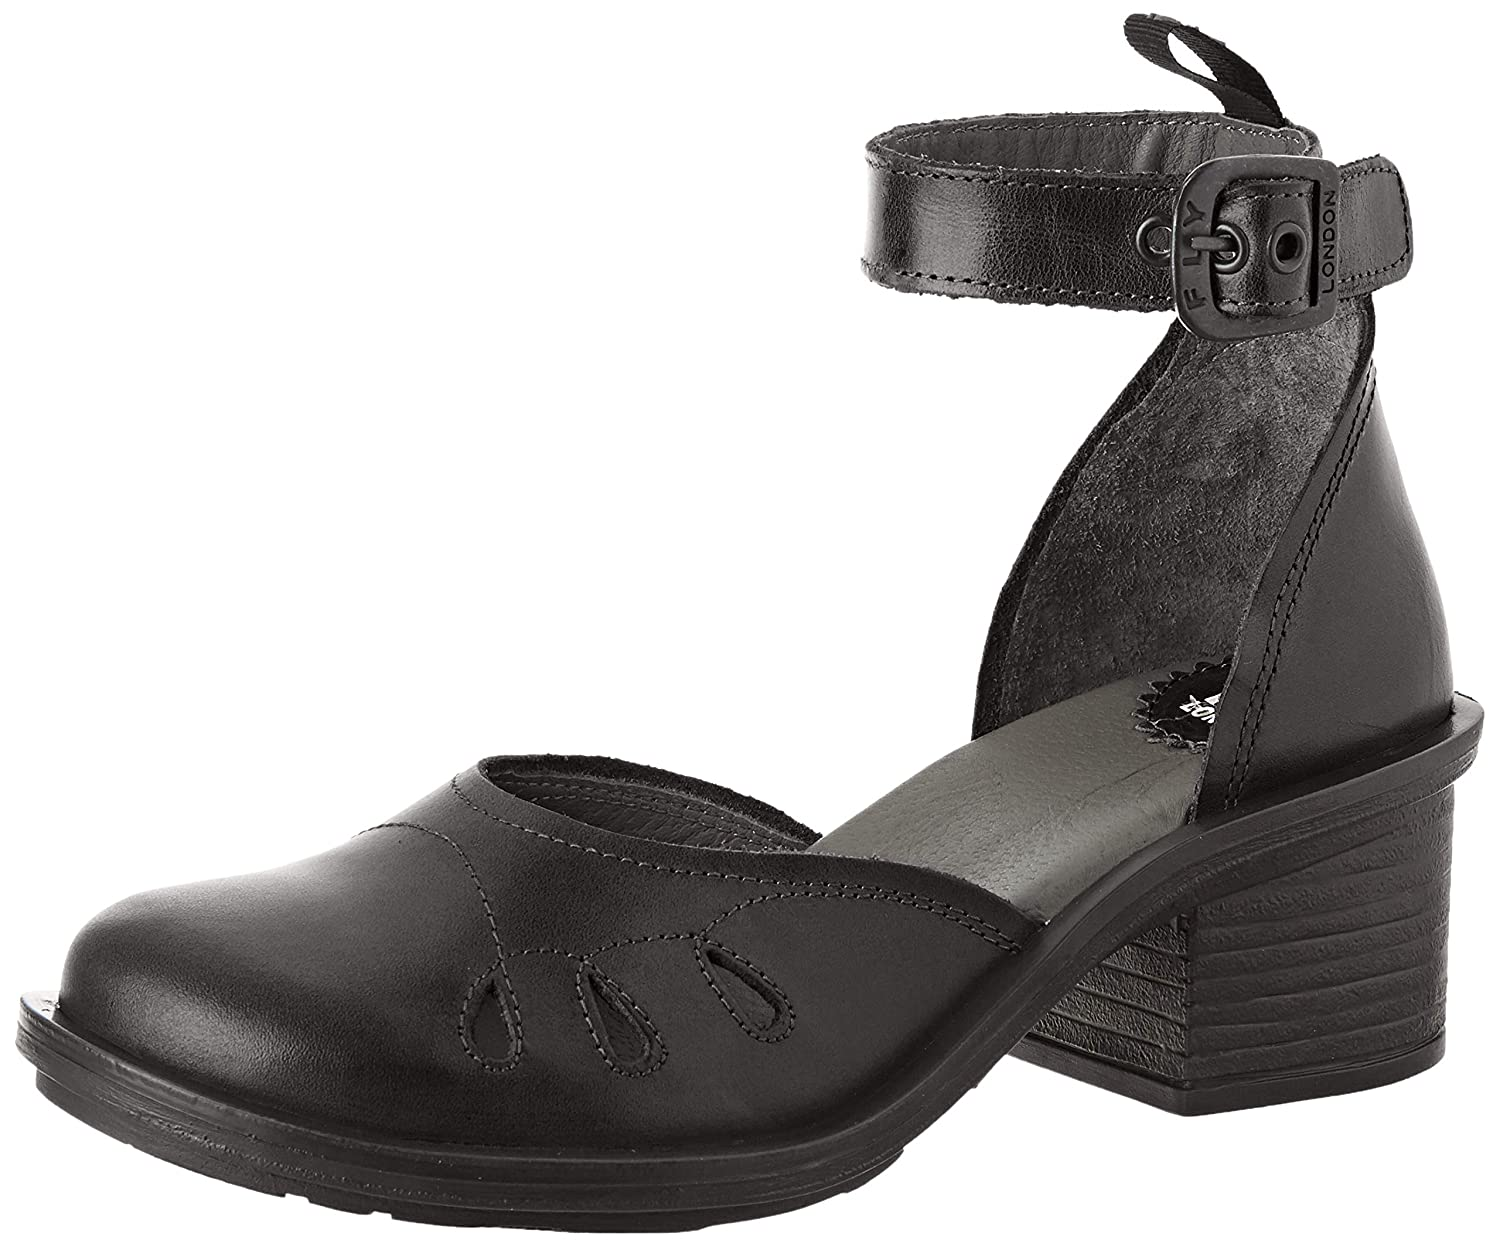 Schwarz(schwarz 000) Fly London Damen Cemi434fly Riemchenpumps